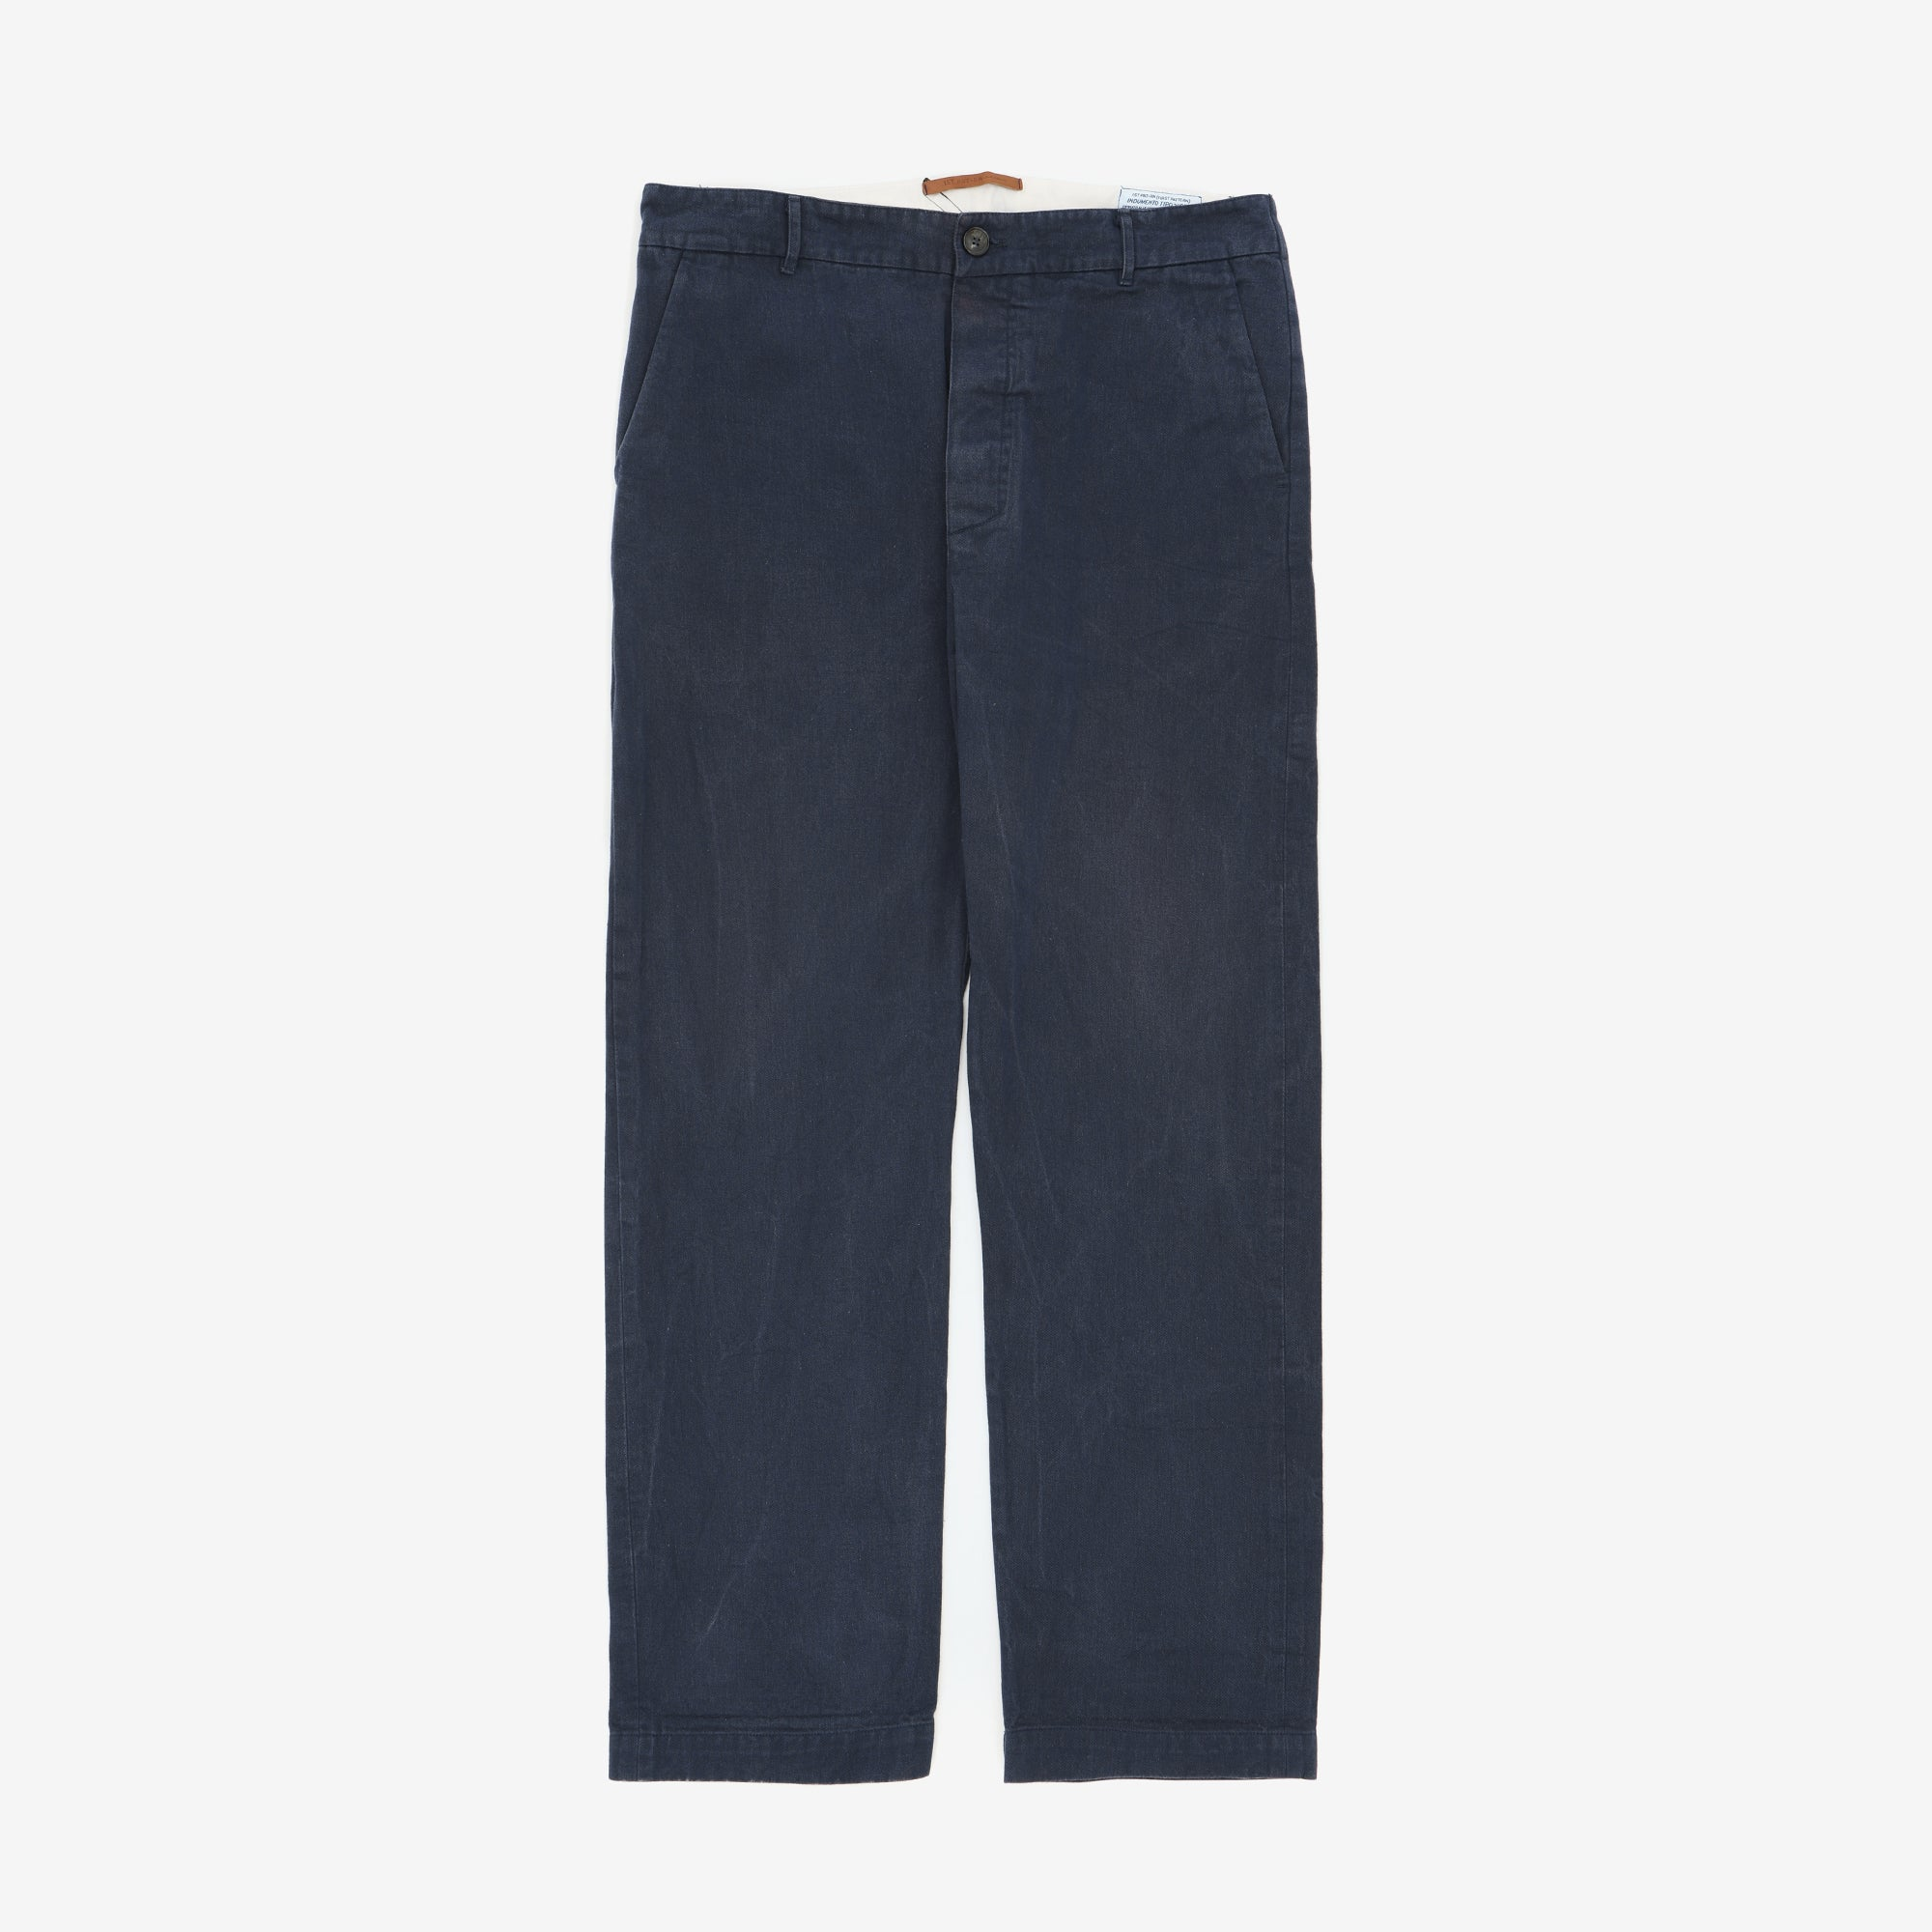 Denim 1914 Trousers